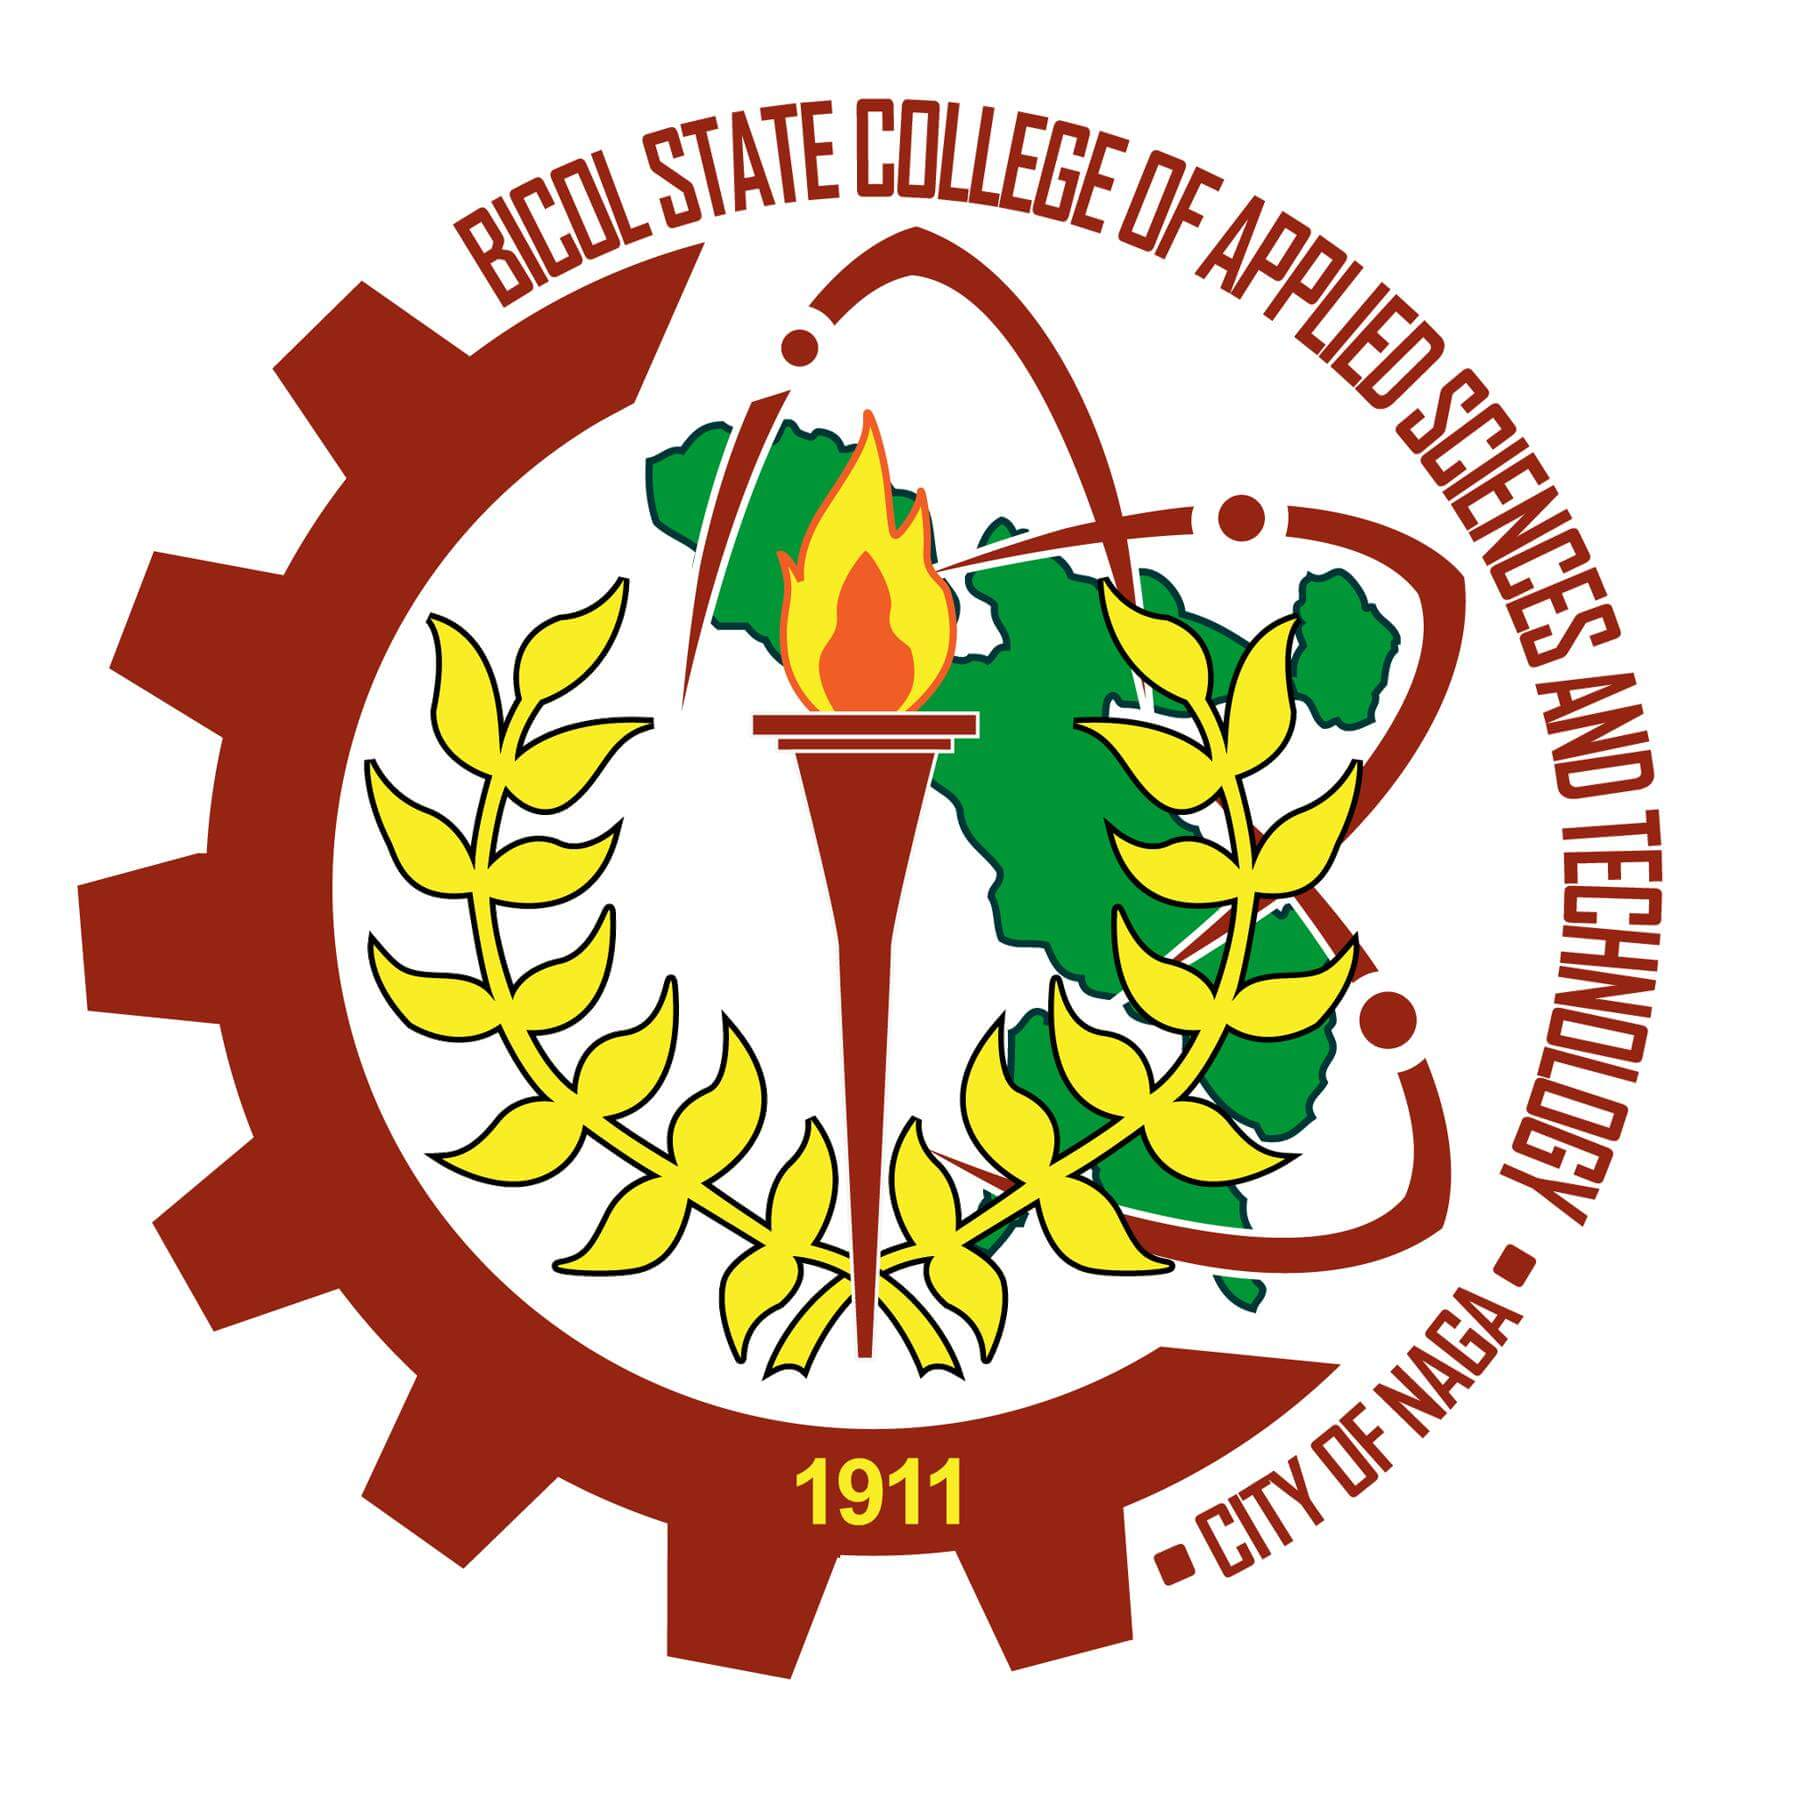 Bicol state college of applied sciences and technology logo